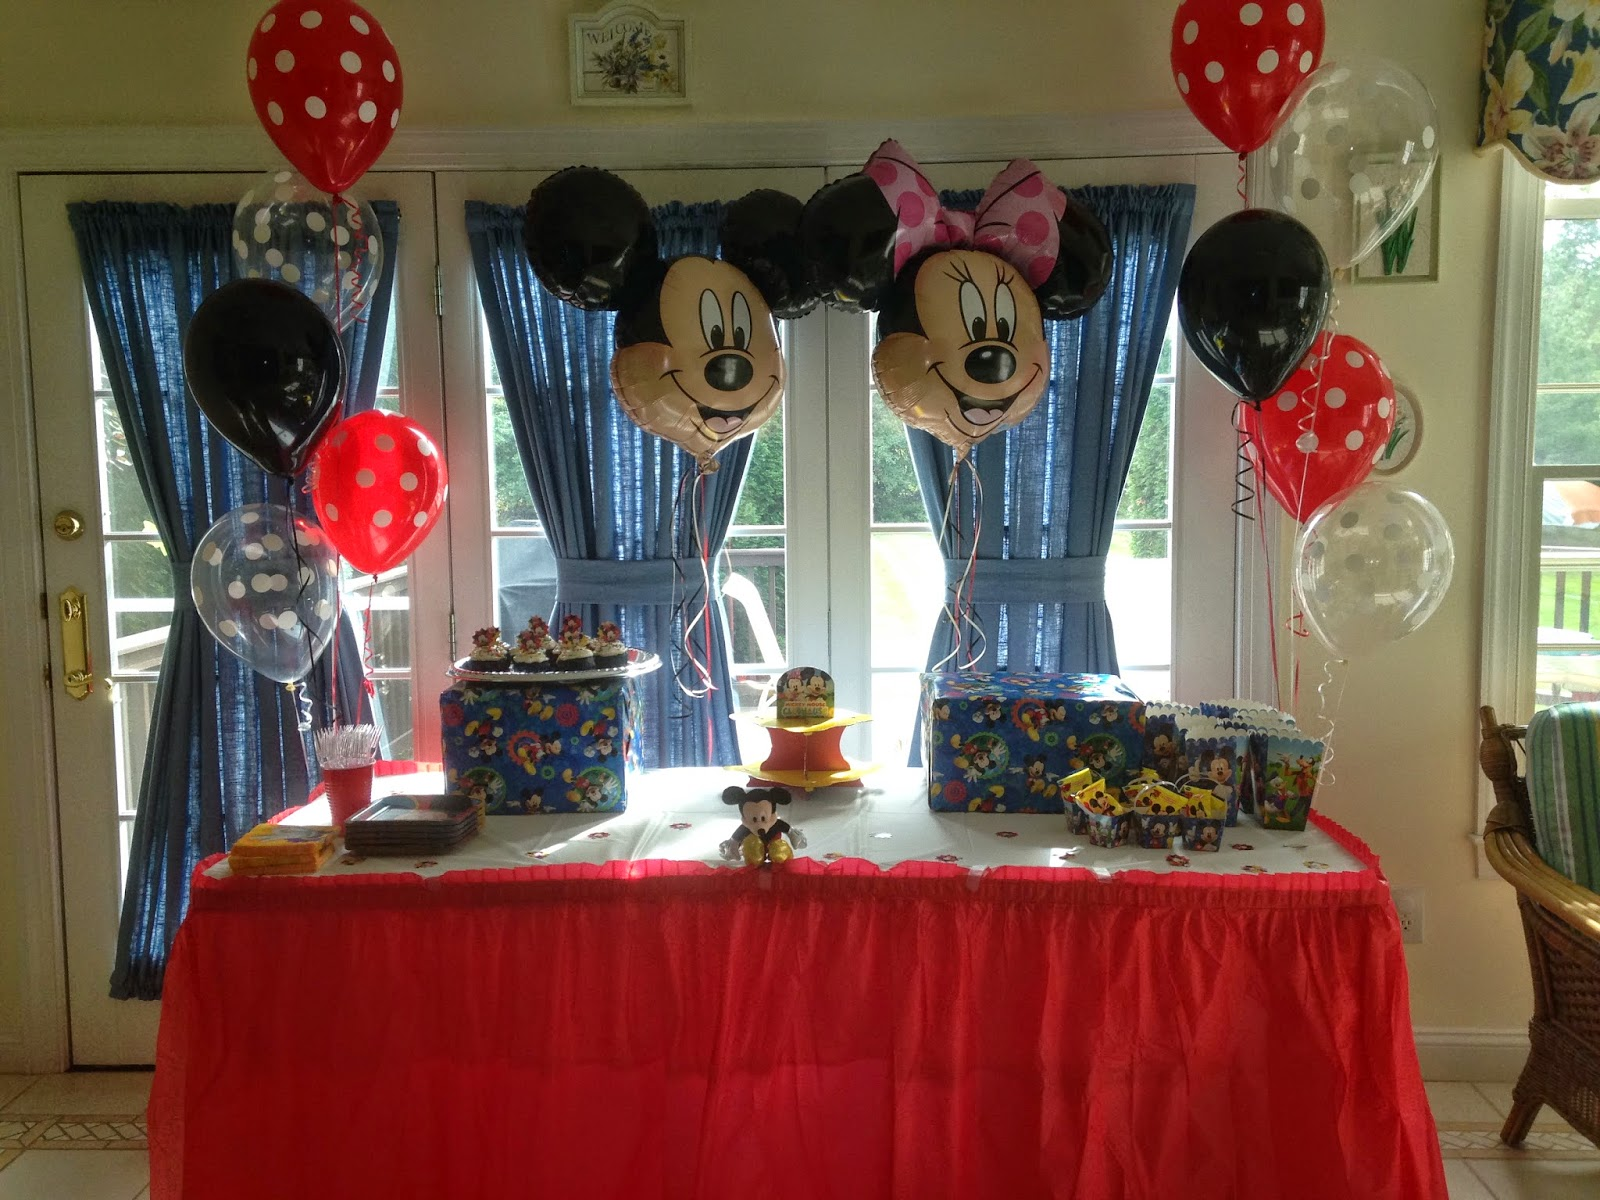 My Mom Threw A Make Wish Send Off Party For Ed And Invited All Of Our Family Finally We Were Going To Disney World